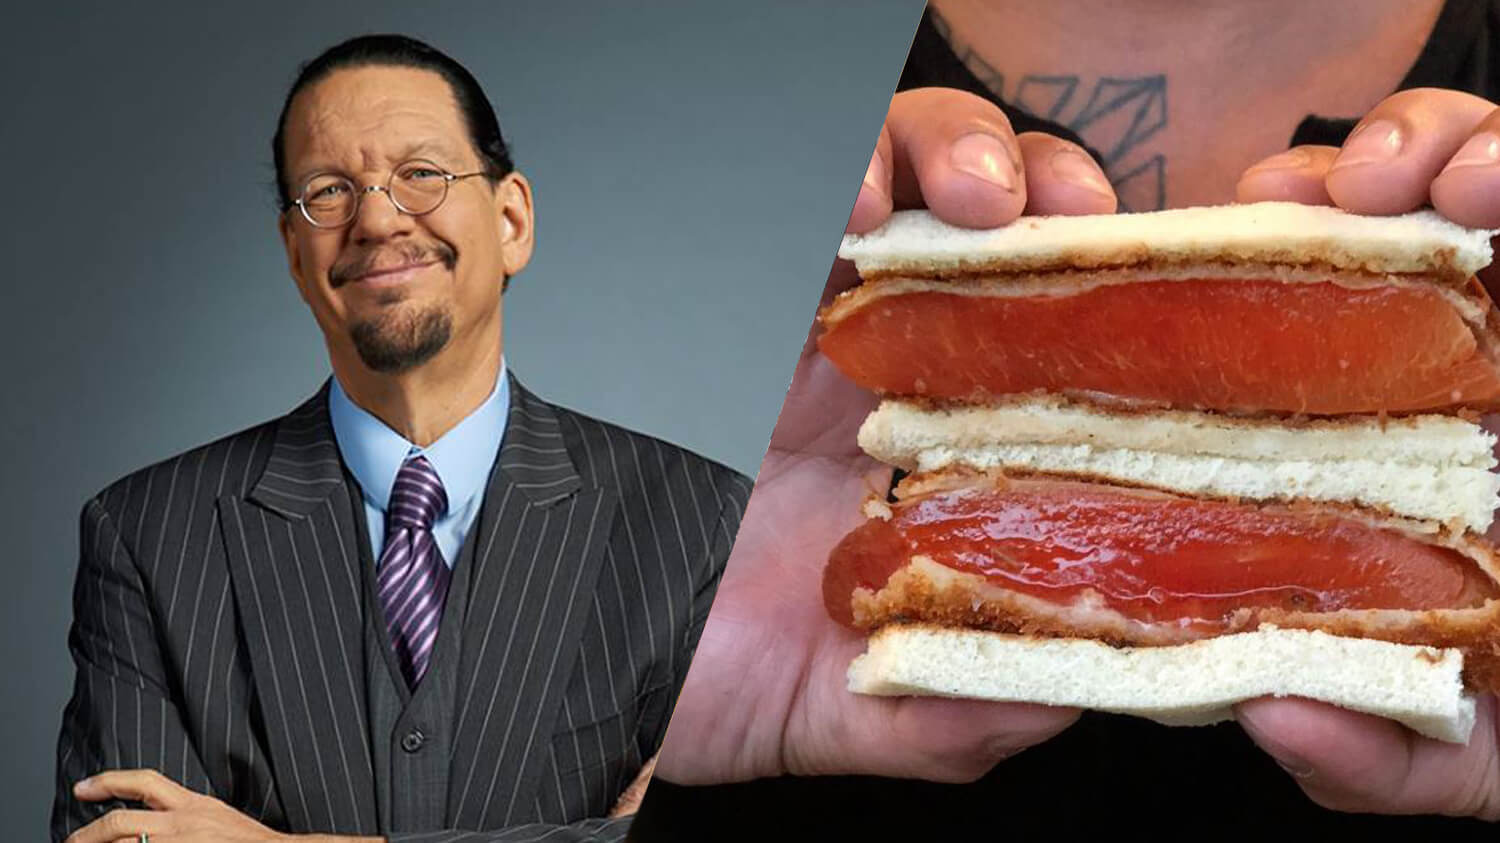 Penn Jillette swears that one of the best vegan meals is a whole watermelon. The comedian and magician adopted a plant-based diet to reverse health issues.